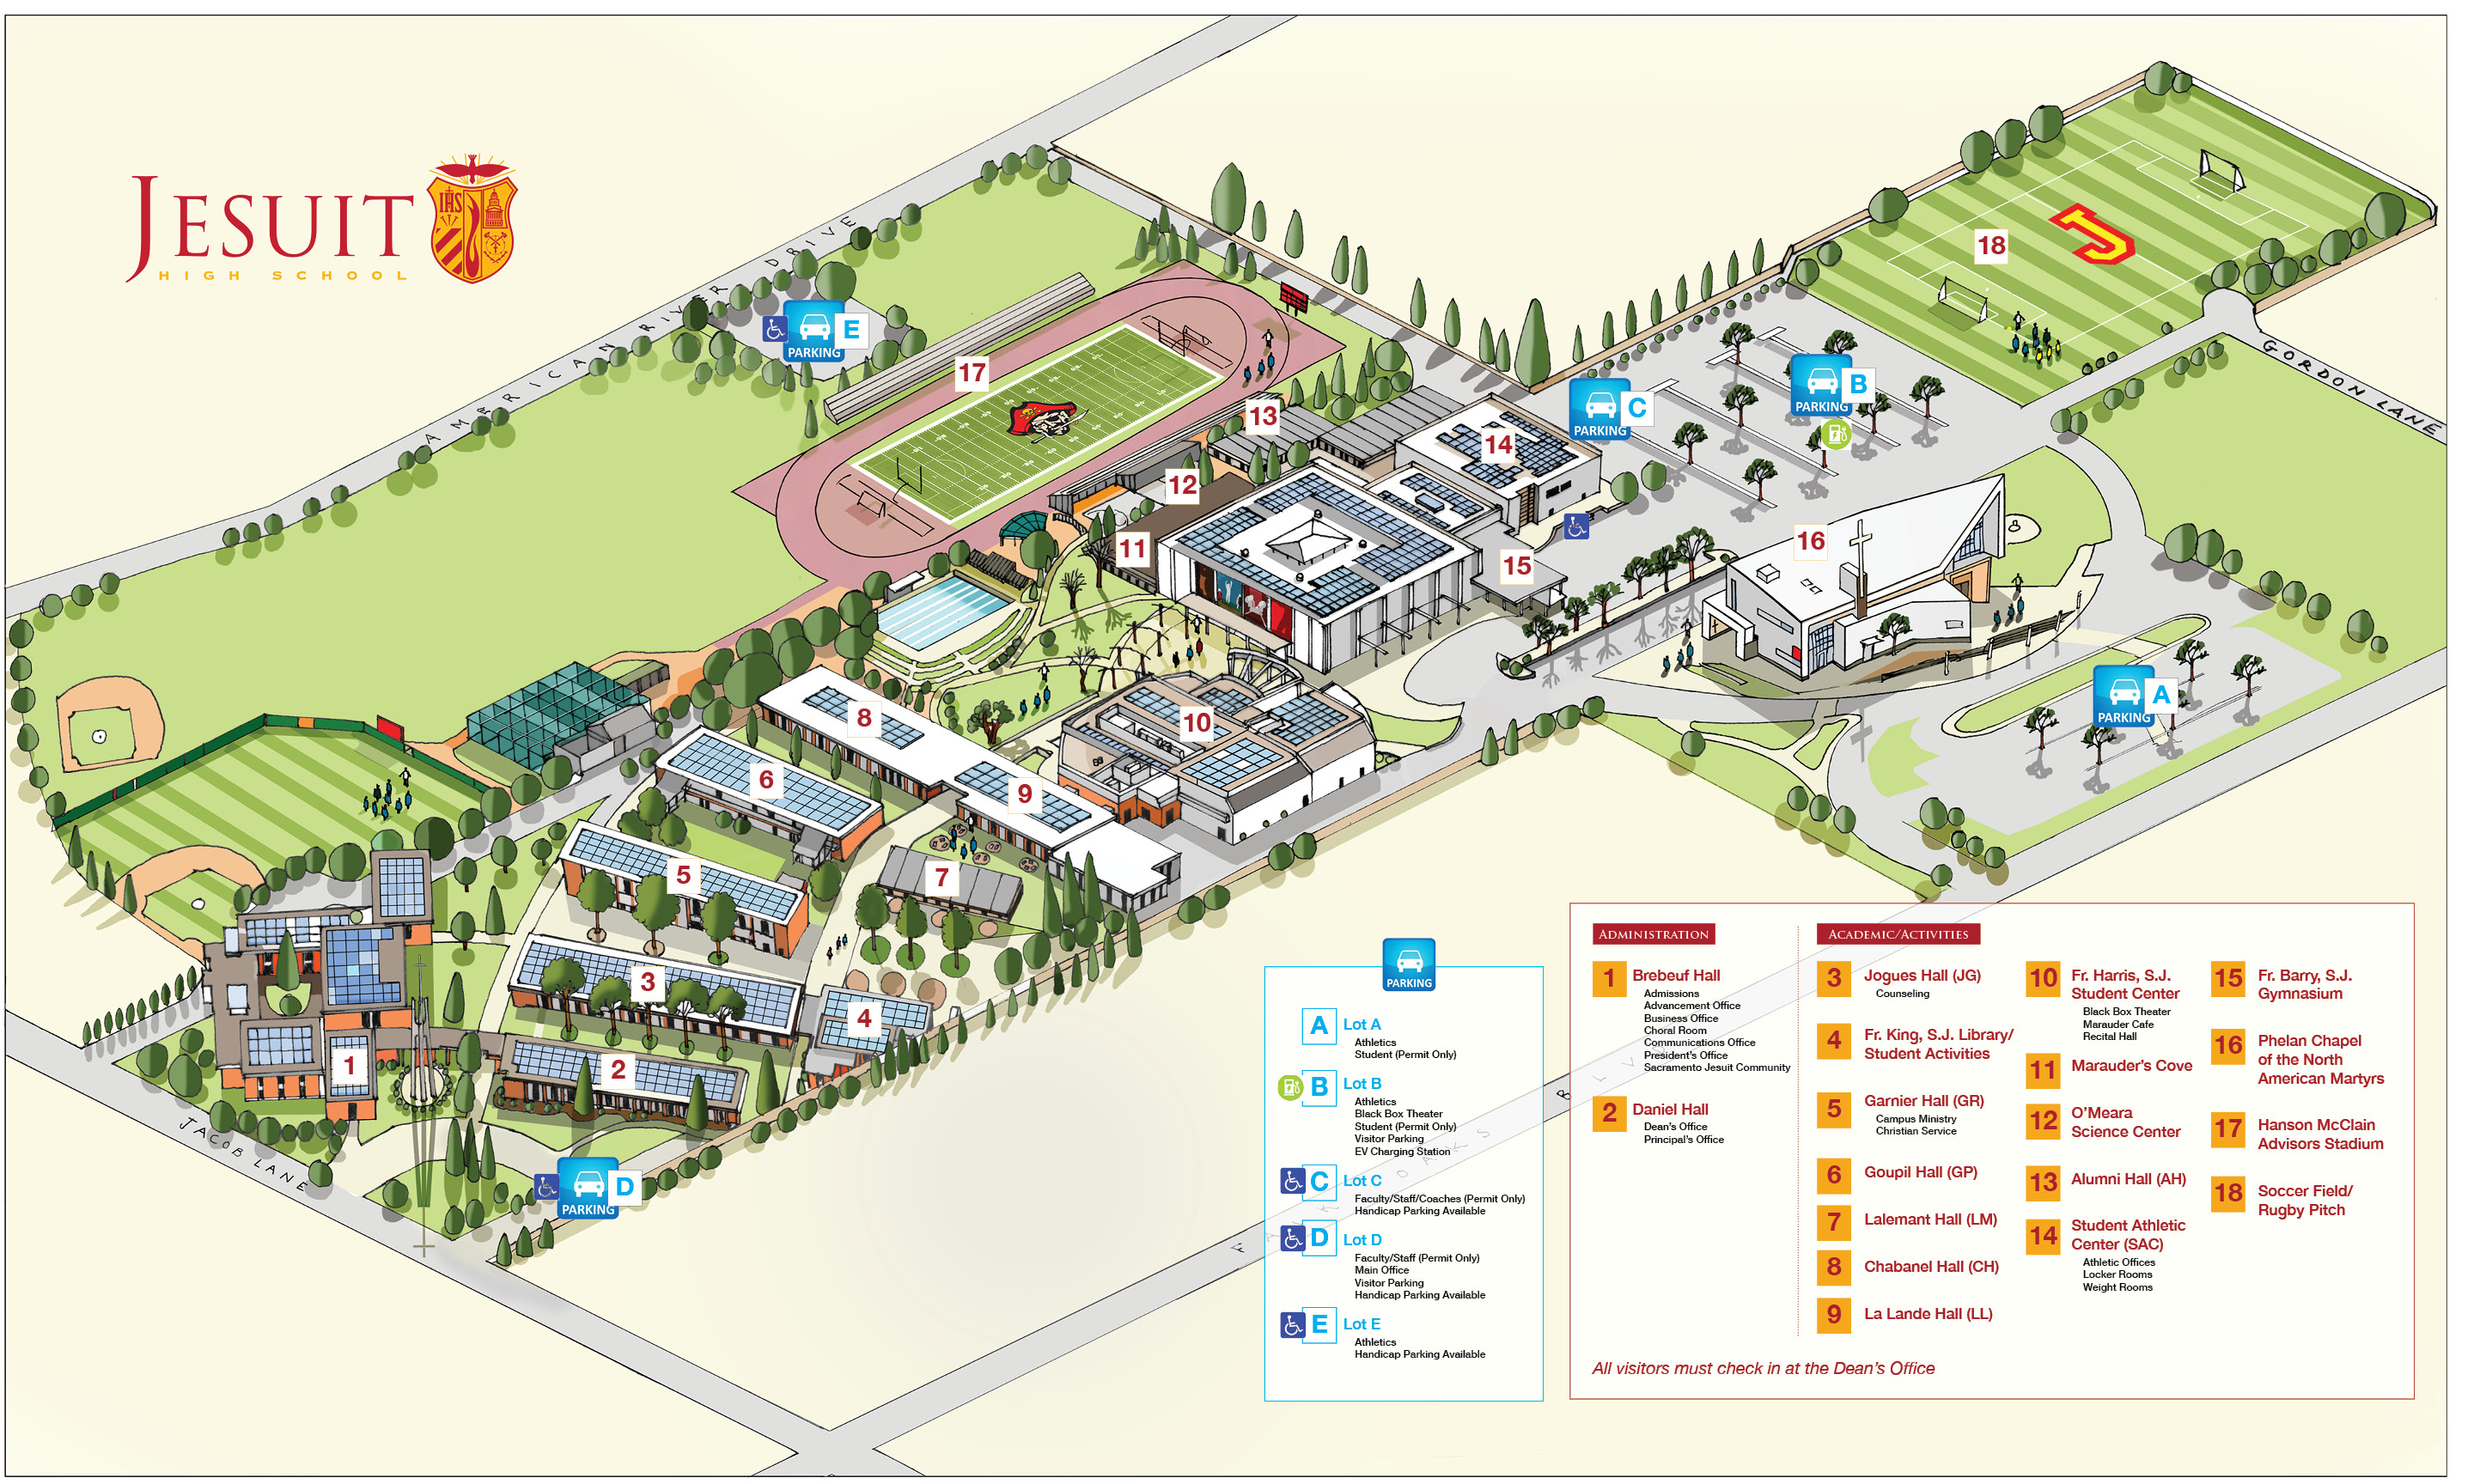 Campus Directions Jesuit High School - Map sites for directions